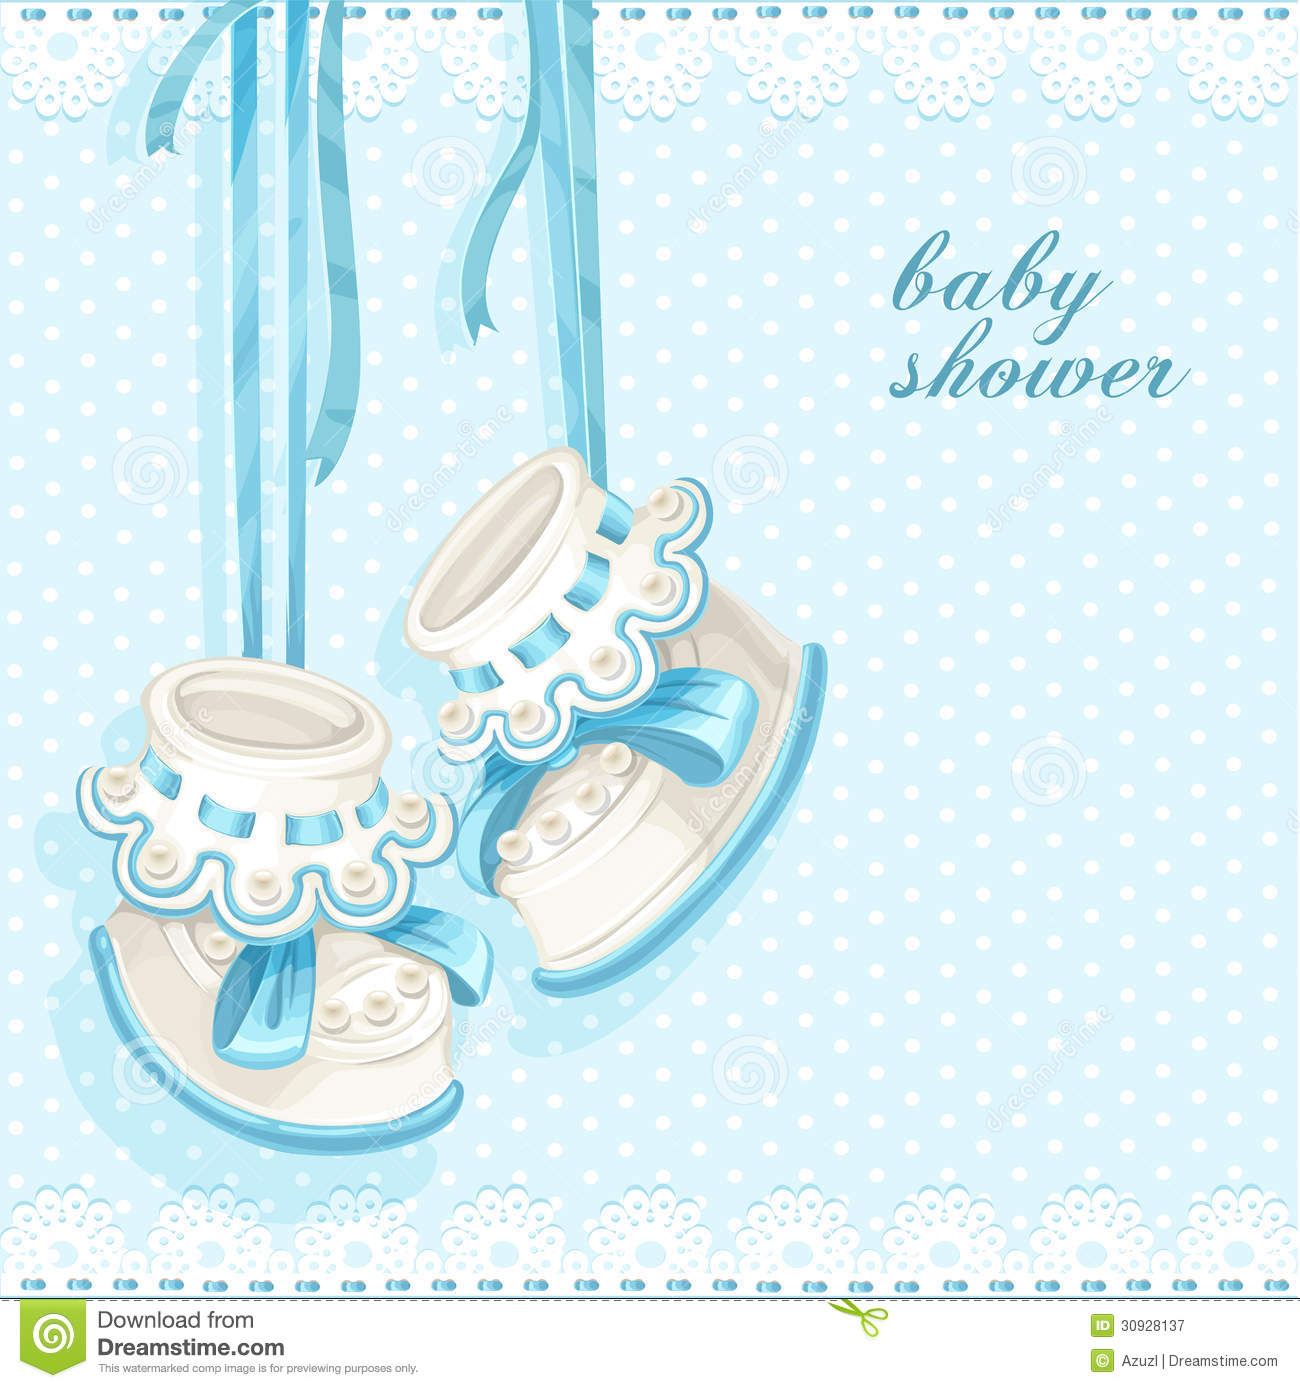 Its A Boy Invitation is luxury invitations example